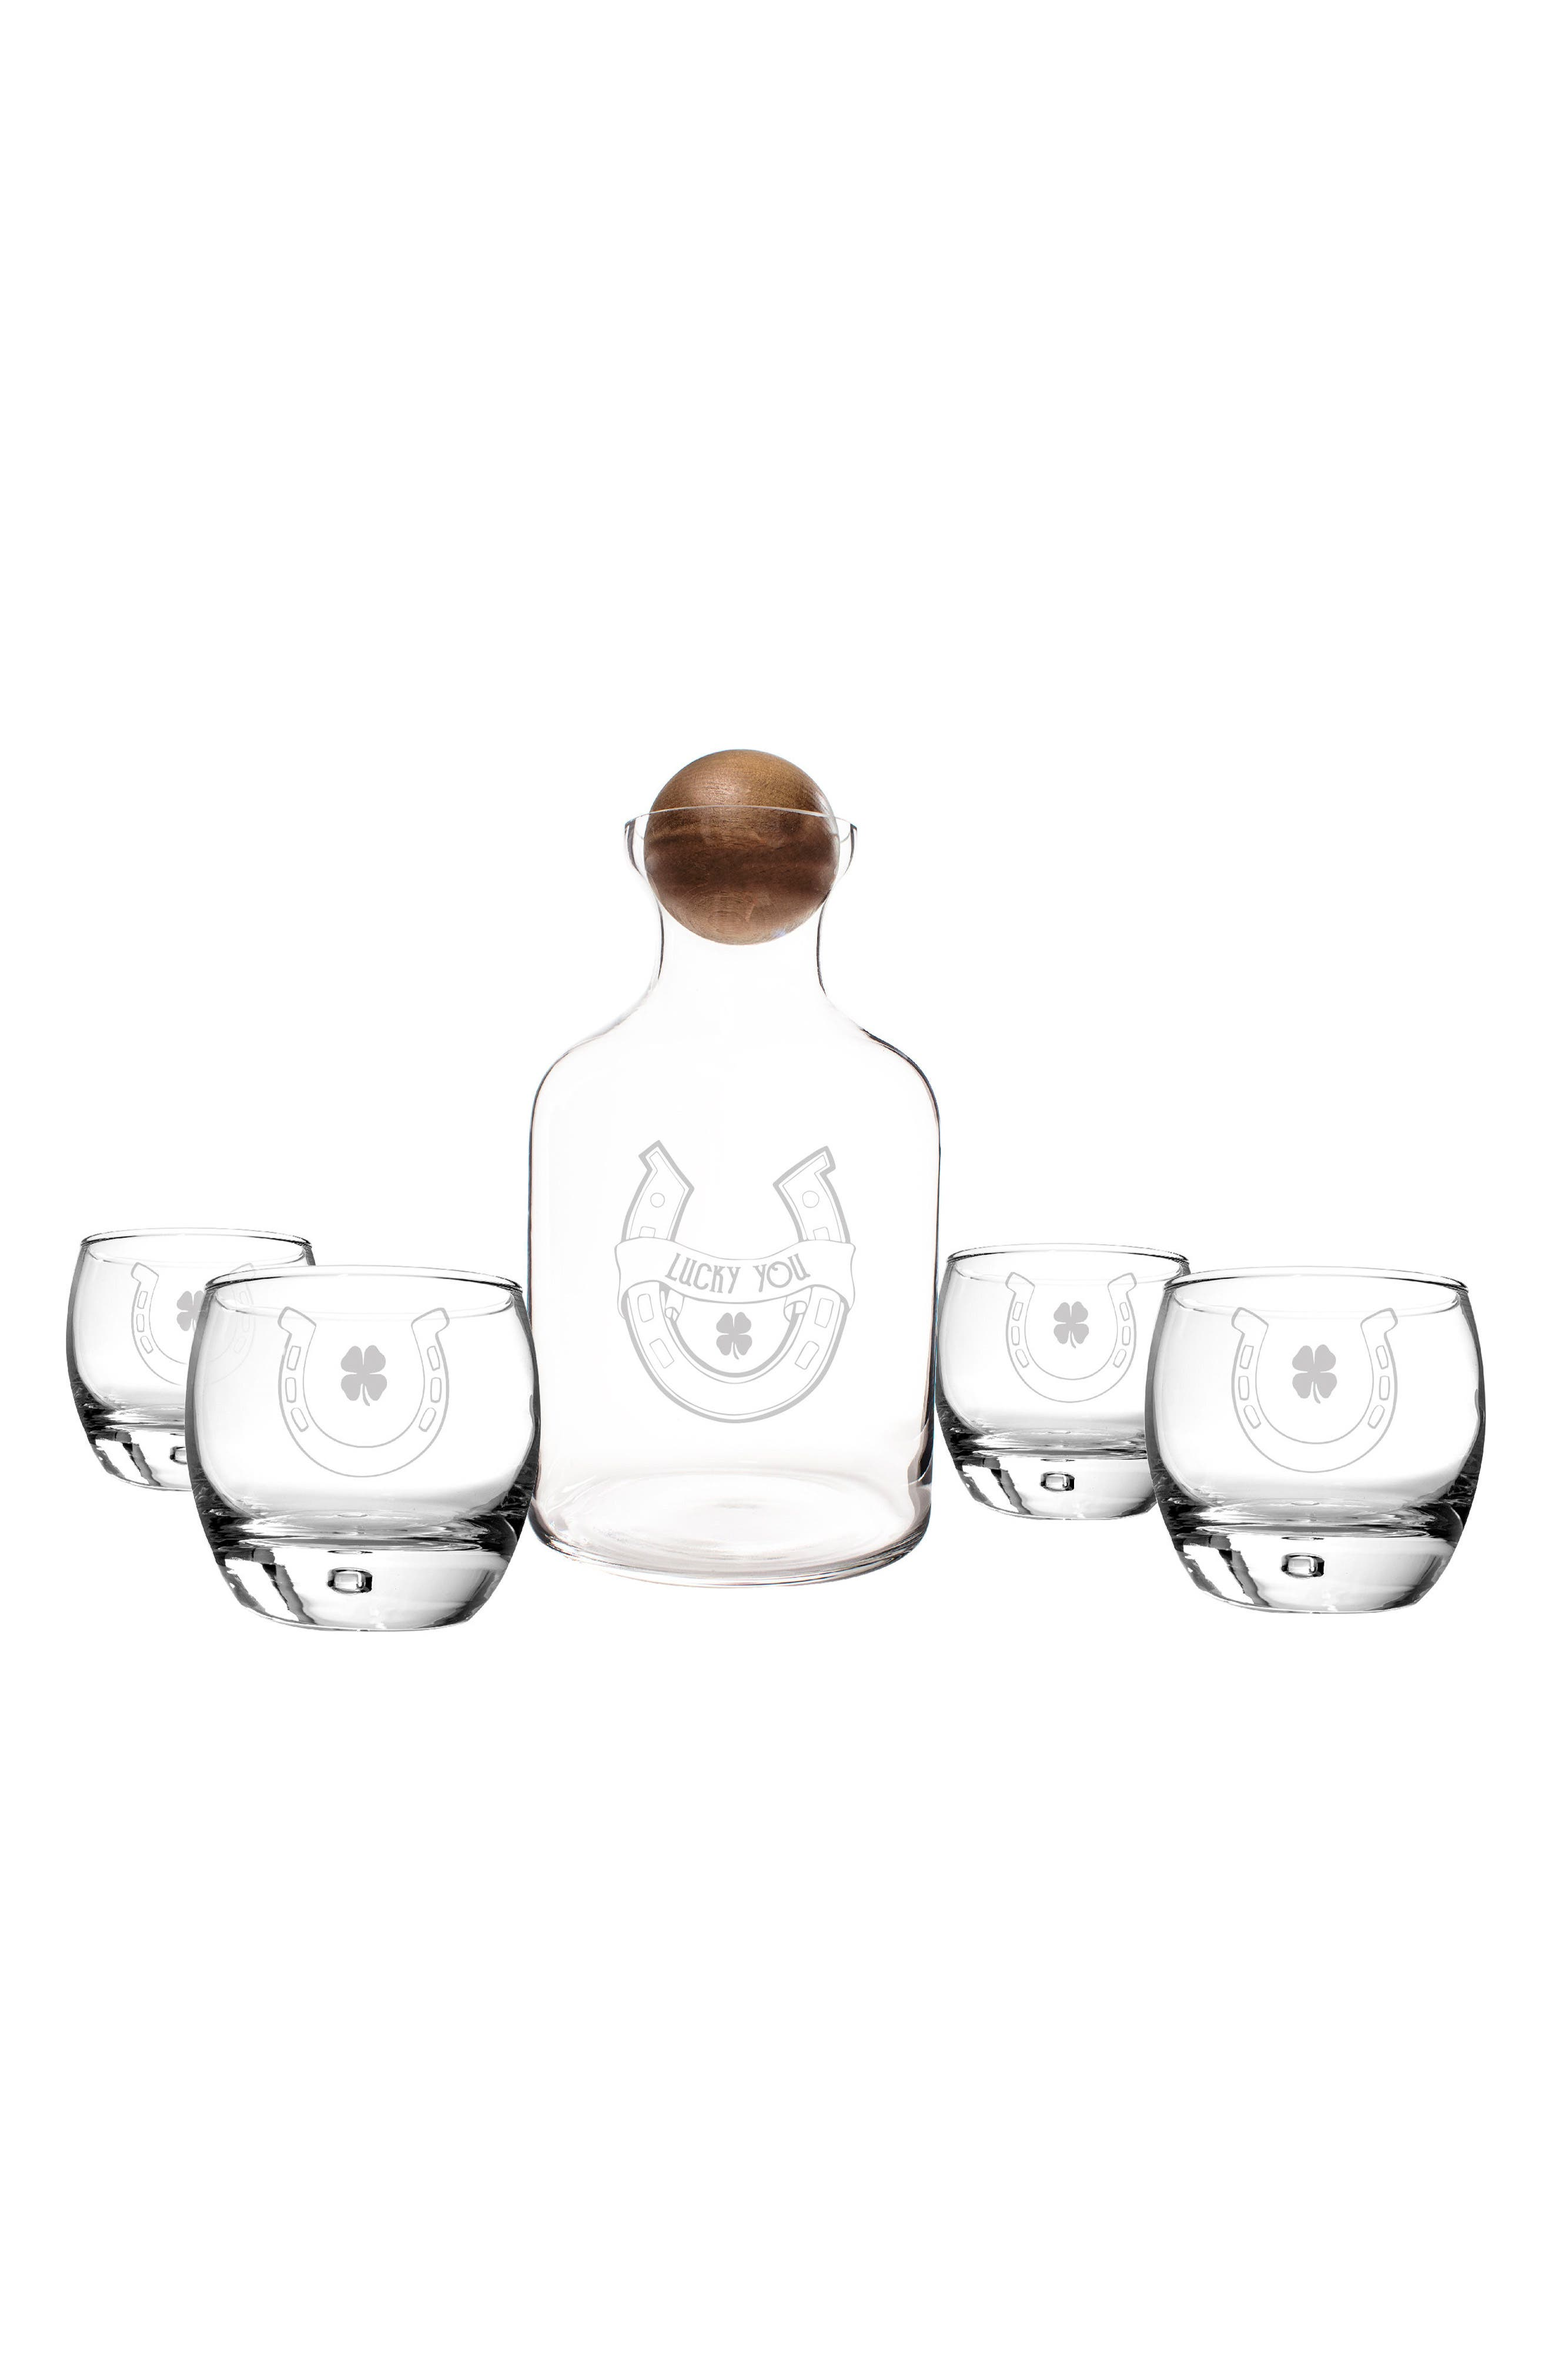 Lucky You Horseshoe Decanter & Set of Four Glasses,                         Main,                         color, St Patricks Day